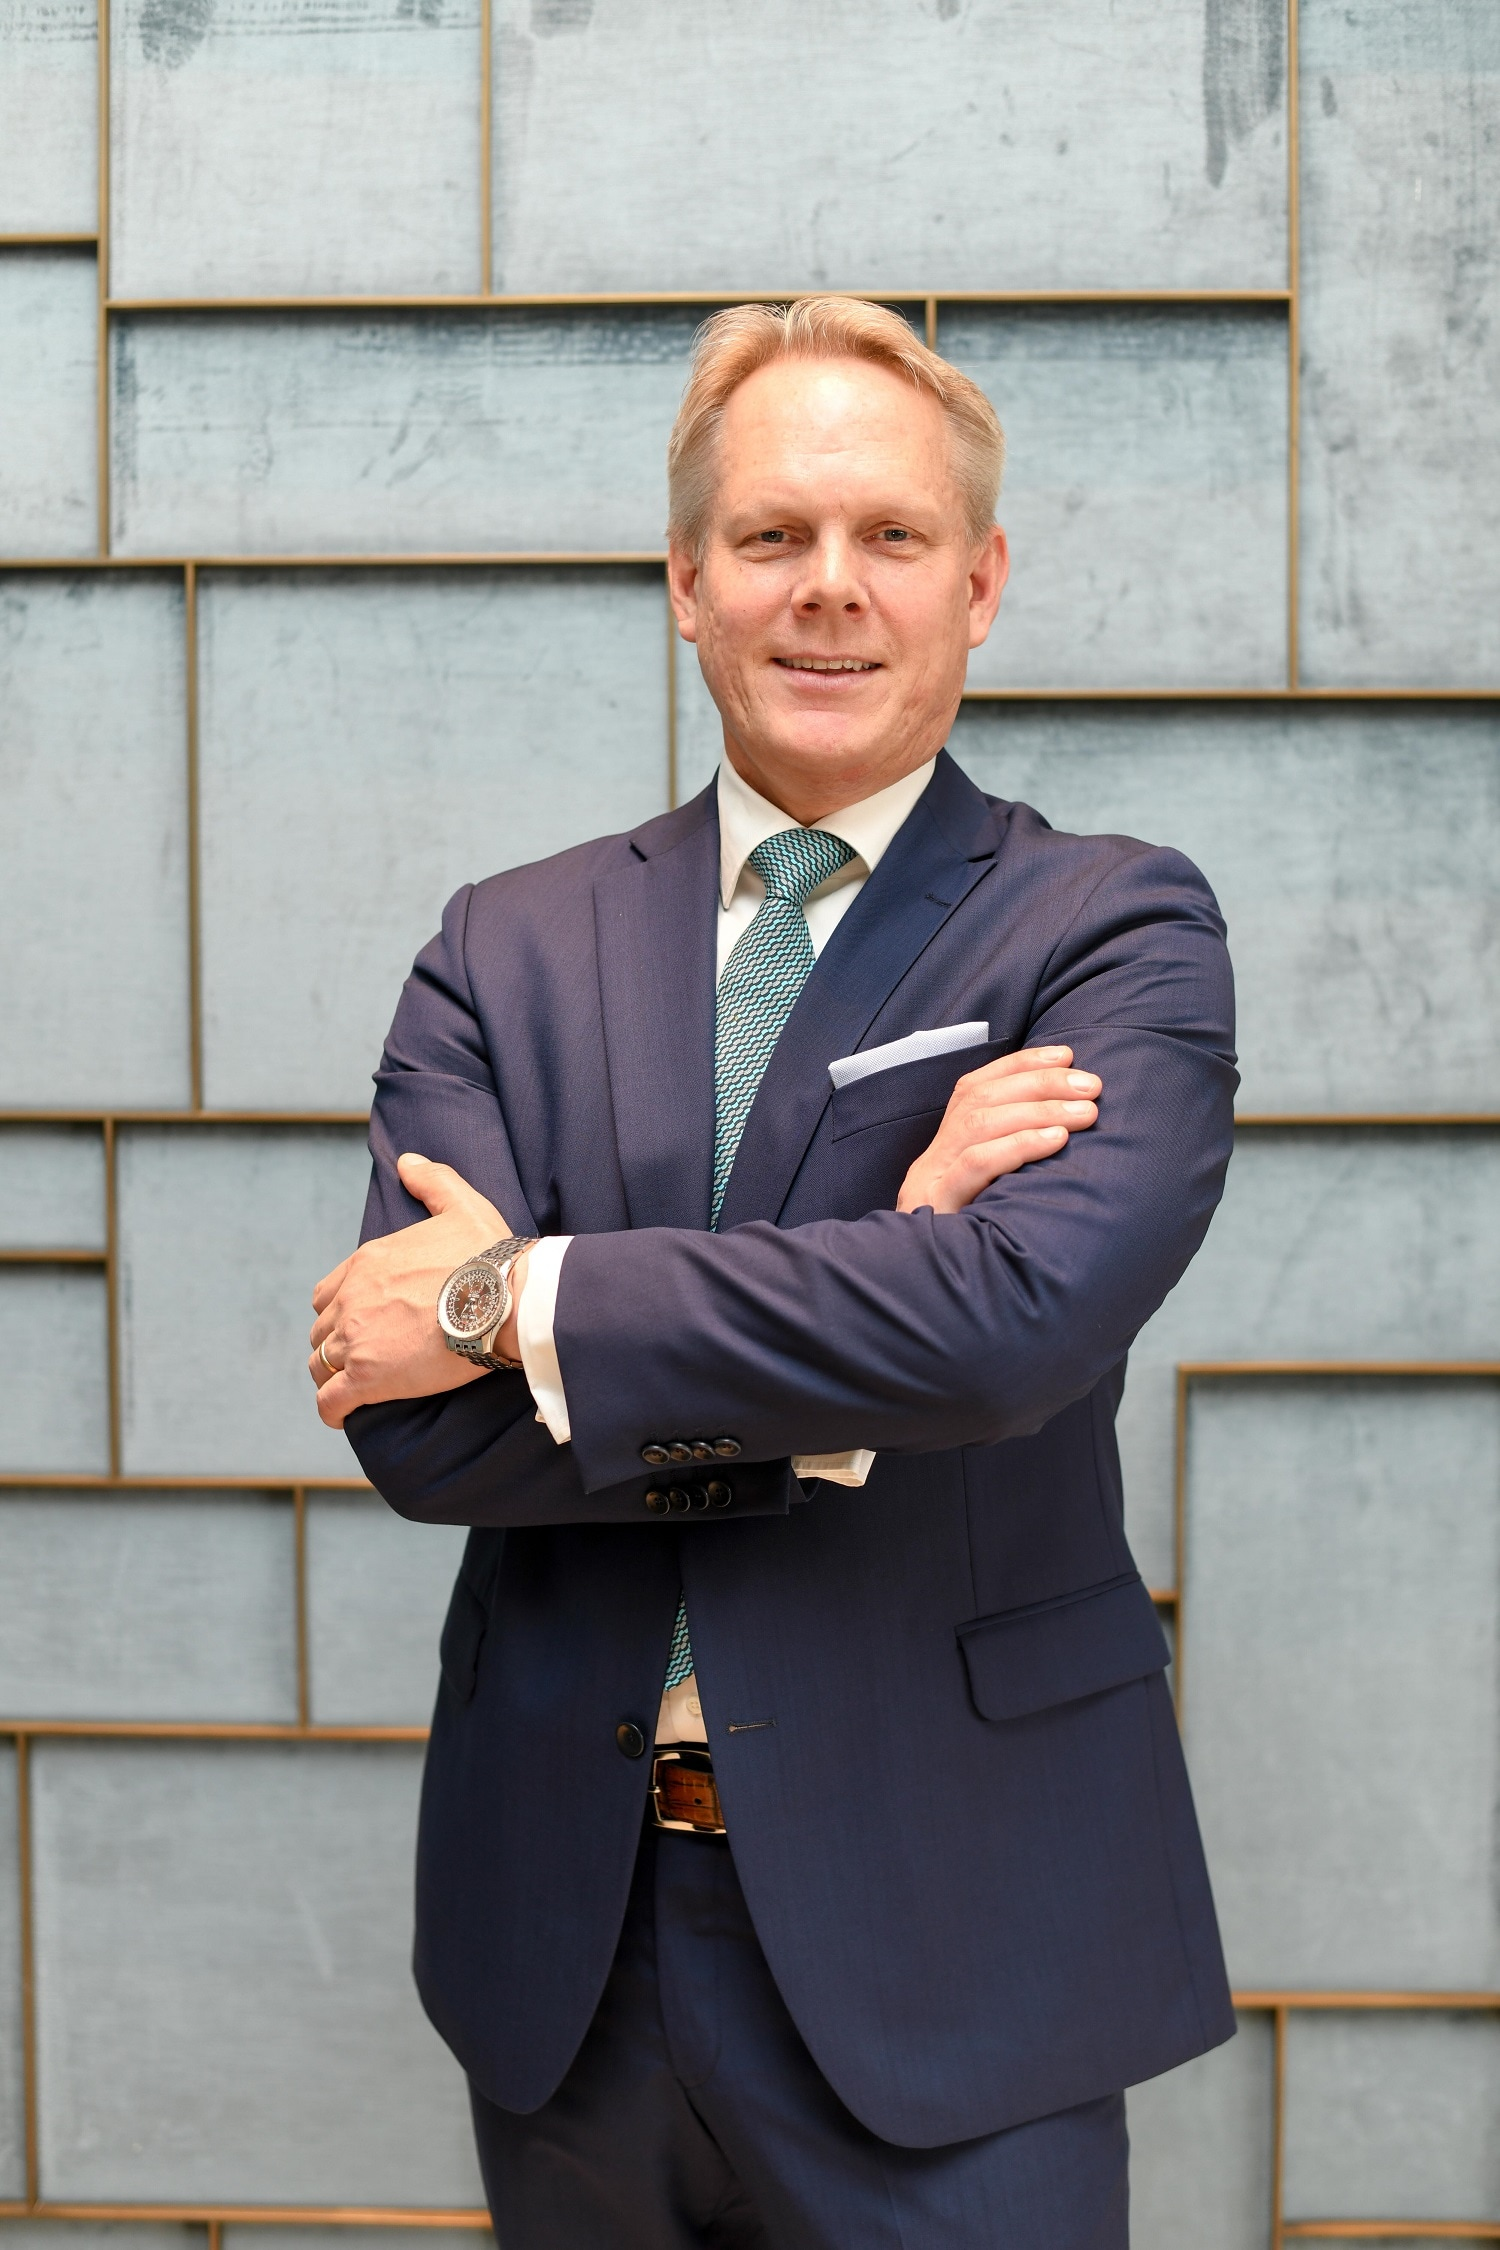 General manger Fredrik Blomqvist is a Four Seasons veteran who has opened several Four Seasons properties, including Four Seasons Hotel Guangzhou